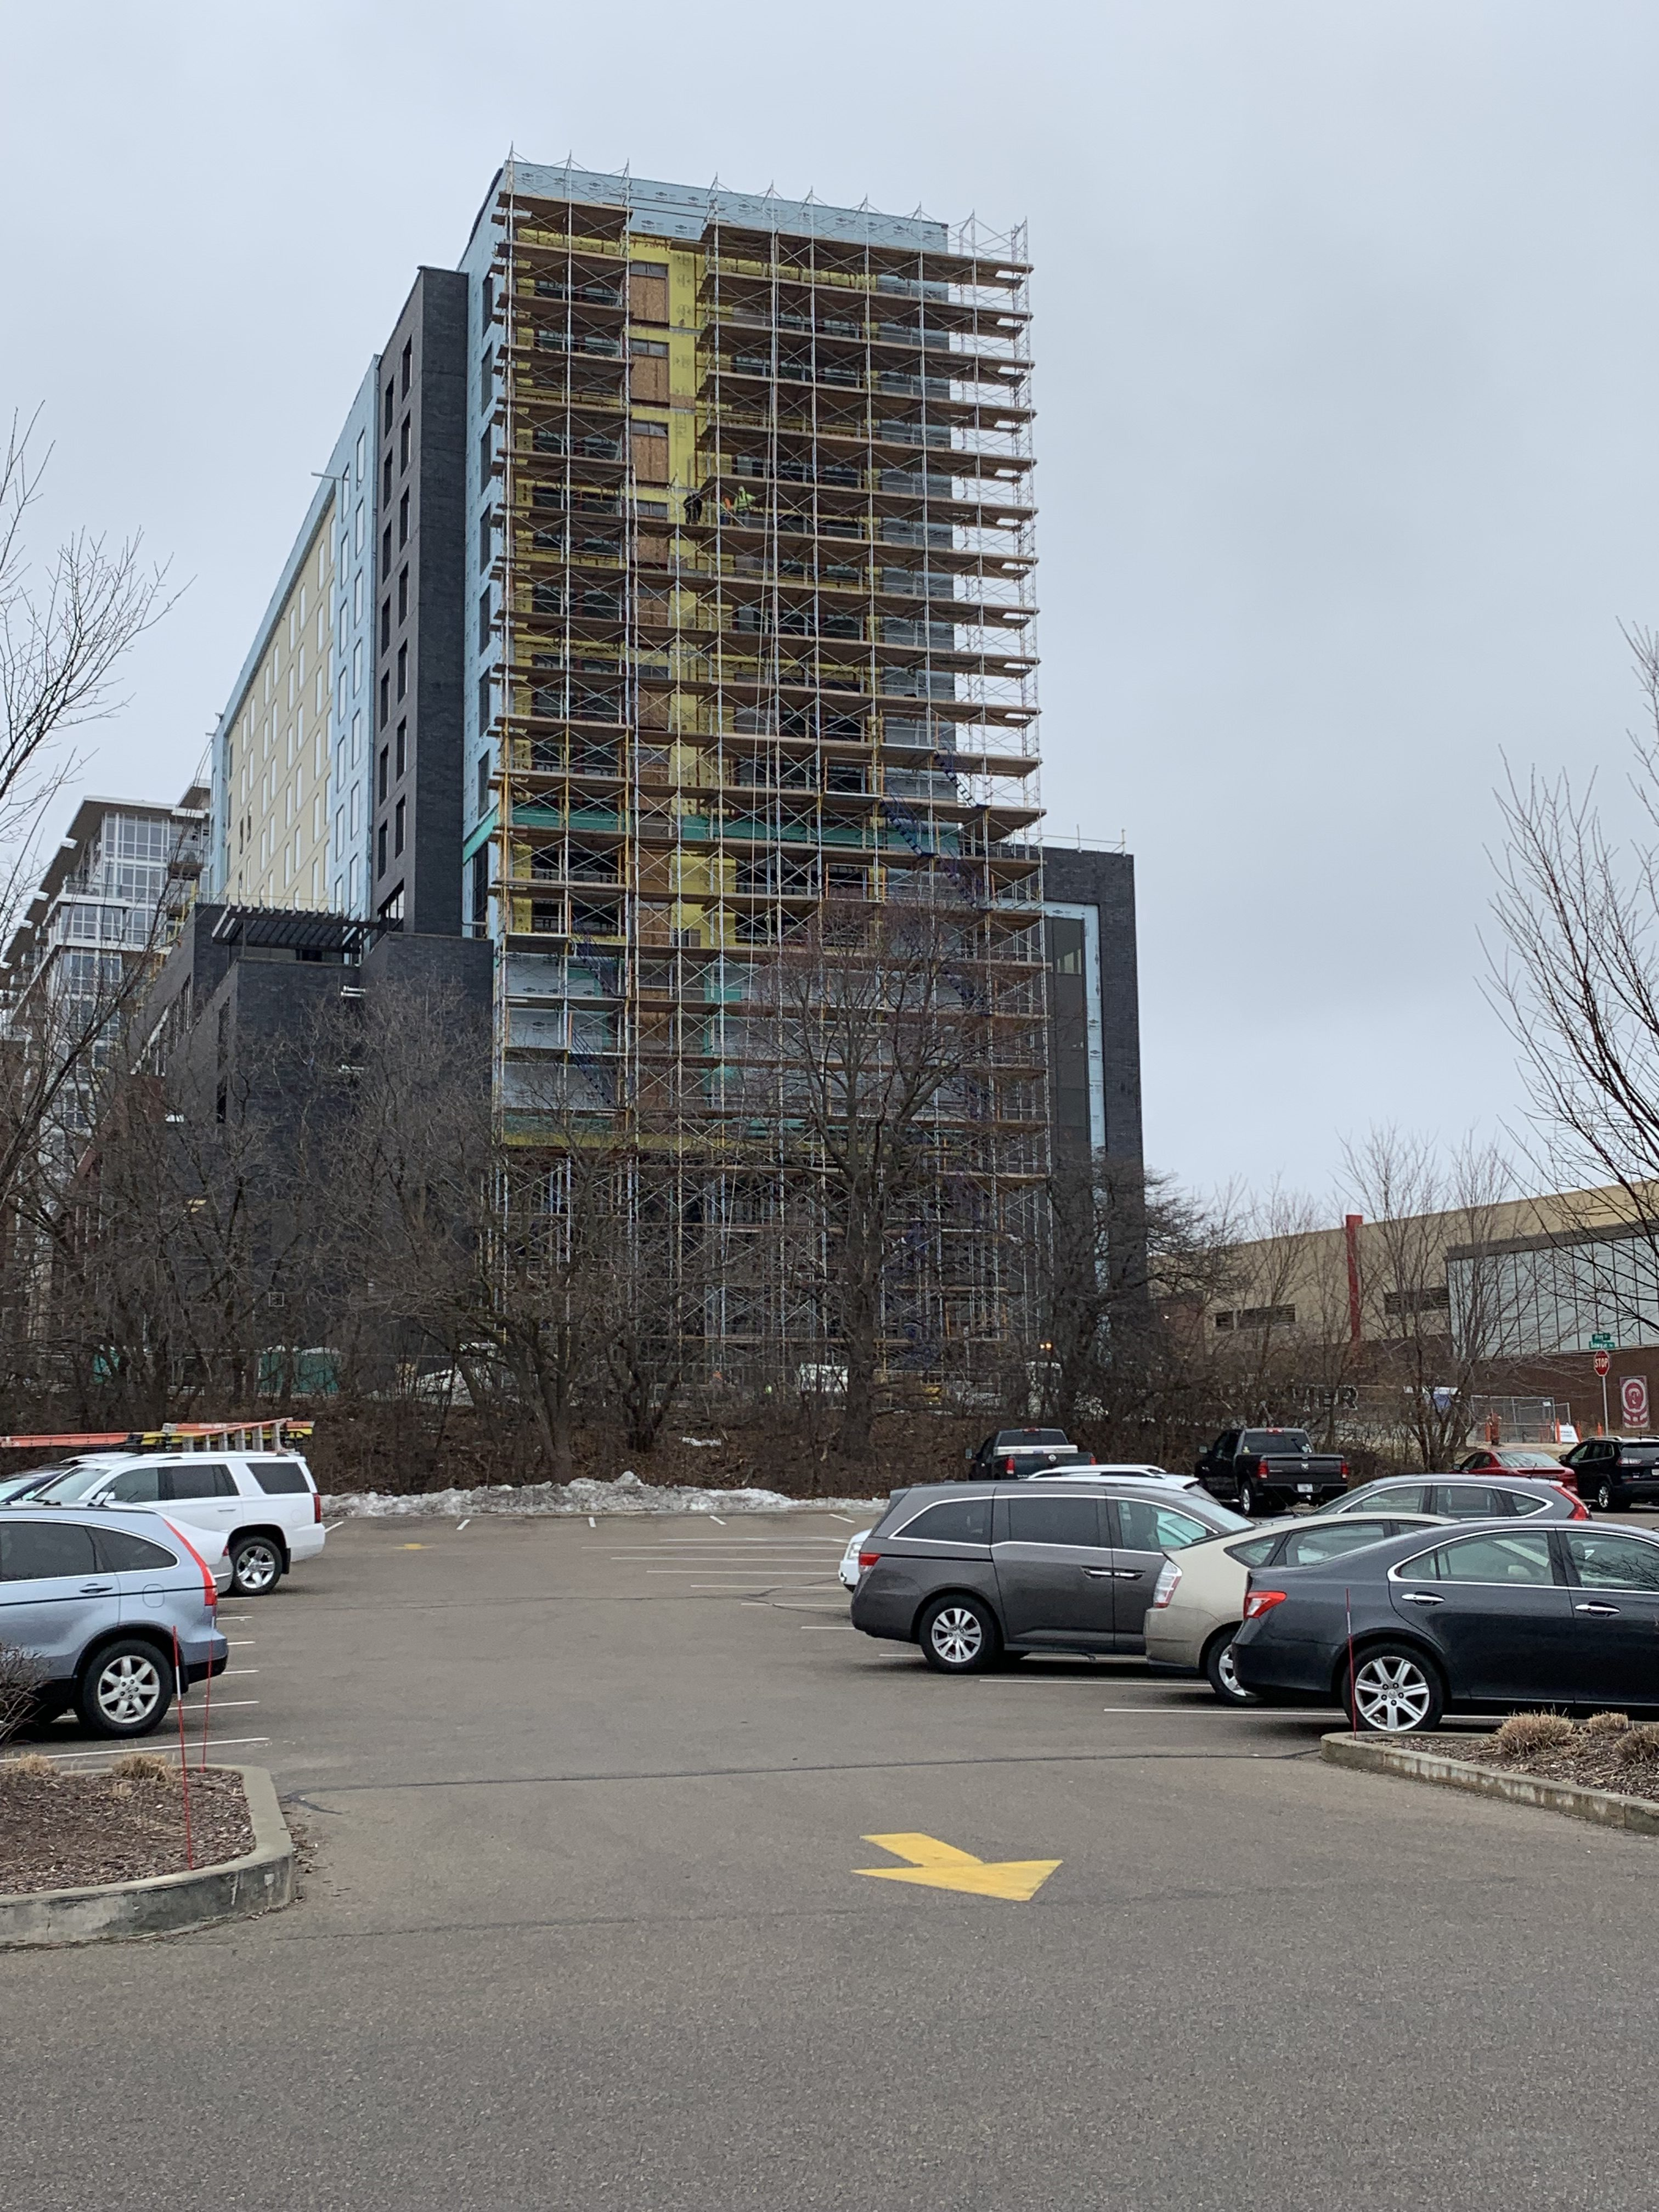 Springhill Suites scaffold